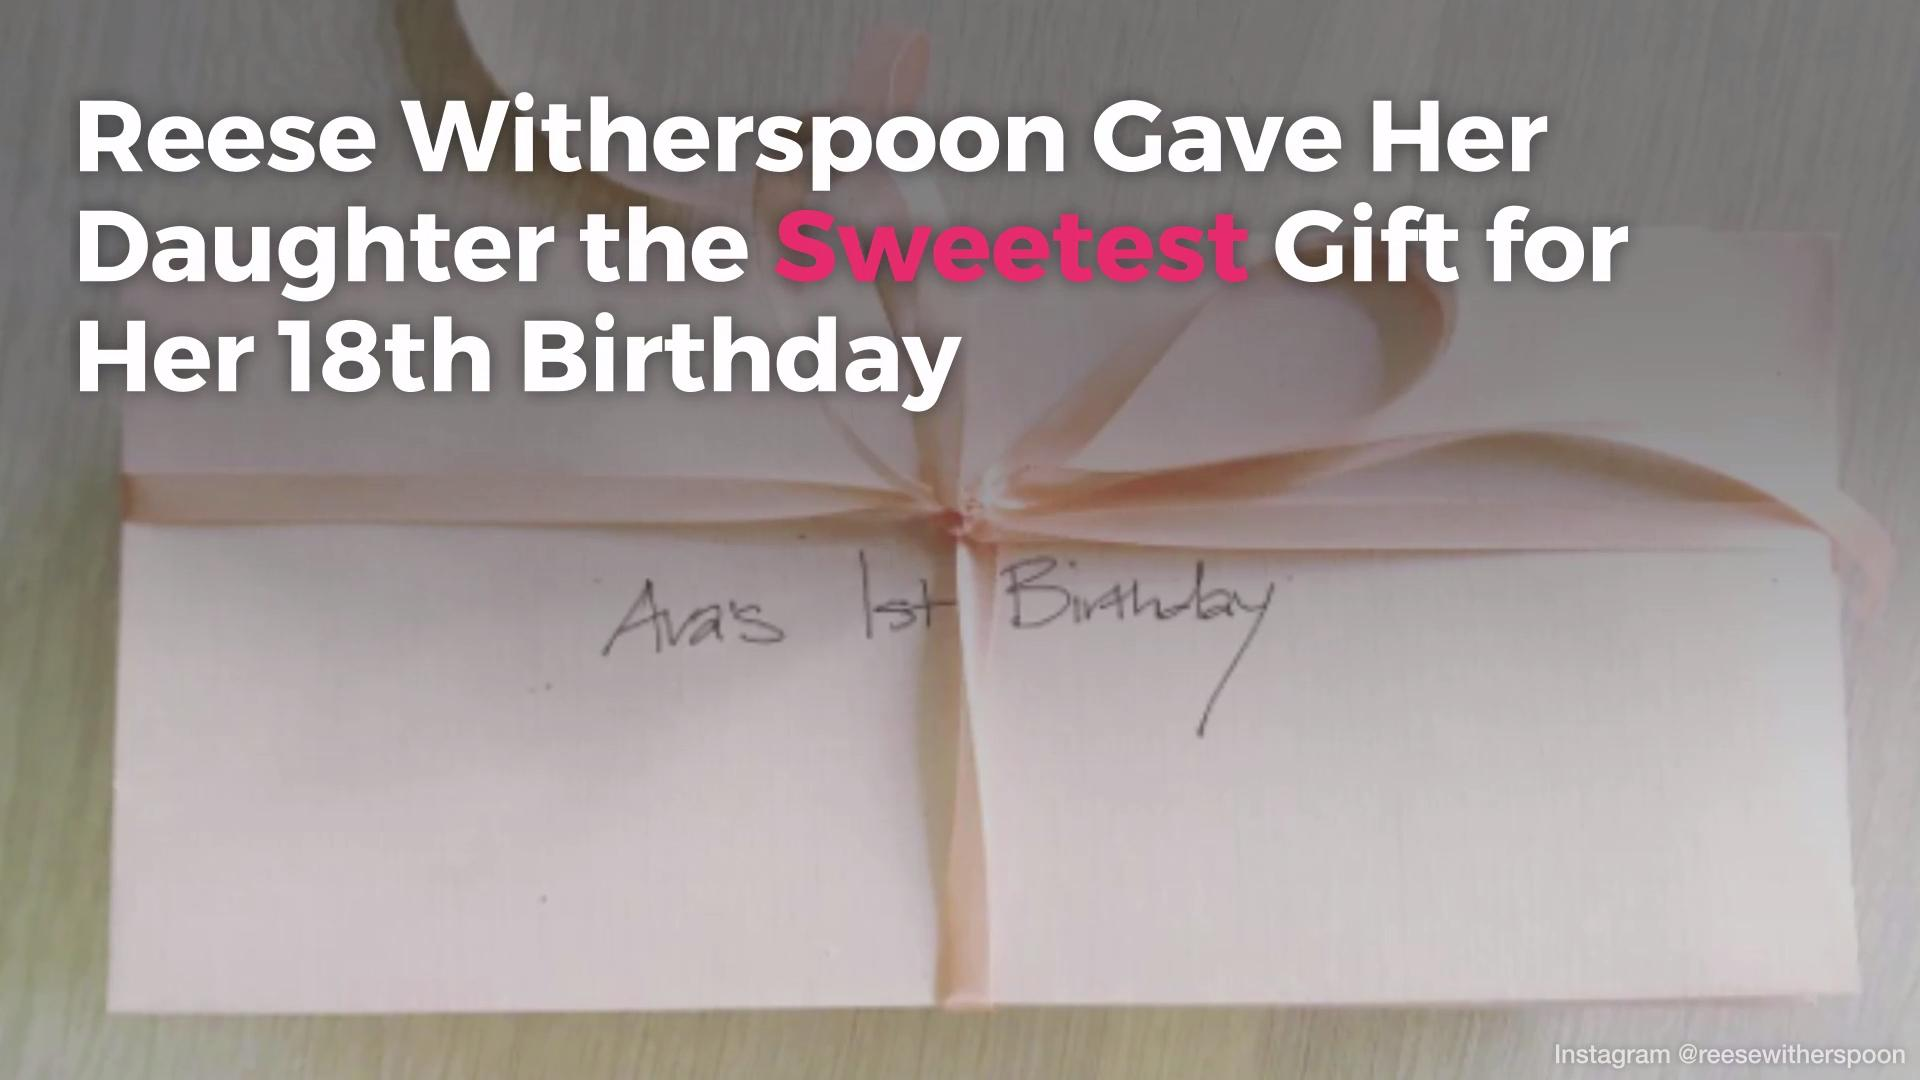 Reese Witherspoon Gave Her Daughter the Sweetest Gift for Her 18th Birthday | Real Simple  sc 1 st  Real Simple & Reese Witherspoon Gave Her Daughter the Sweetest Gift for Her 18th ...